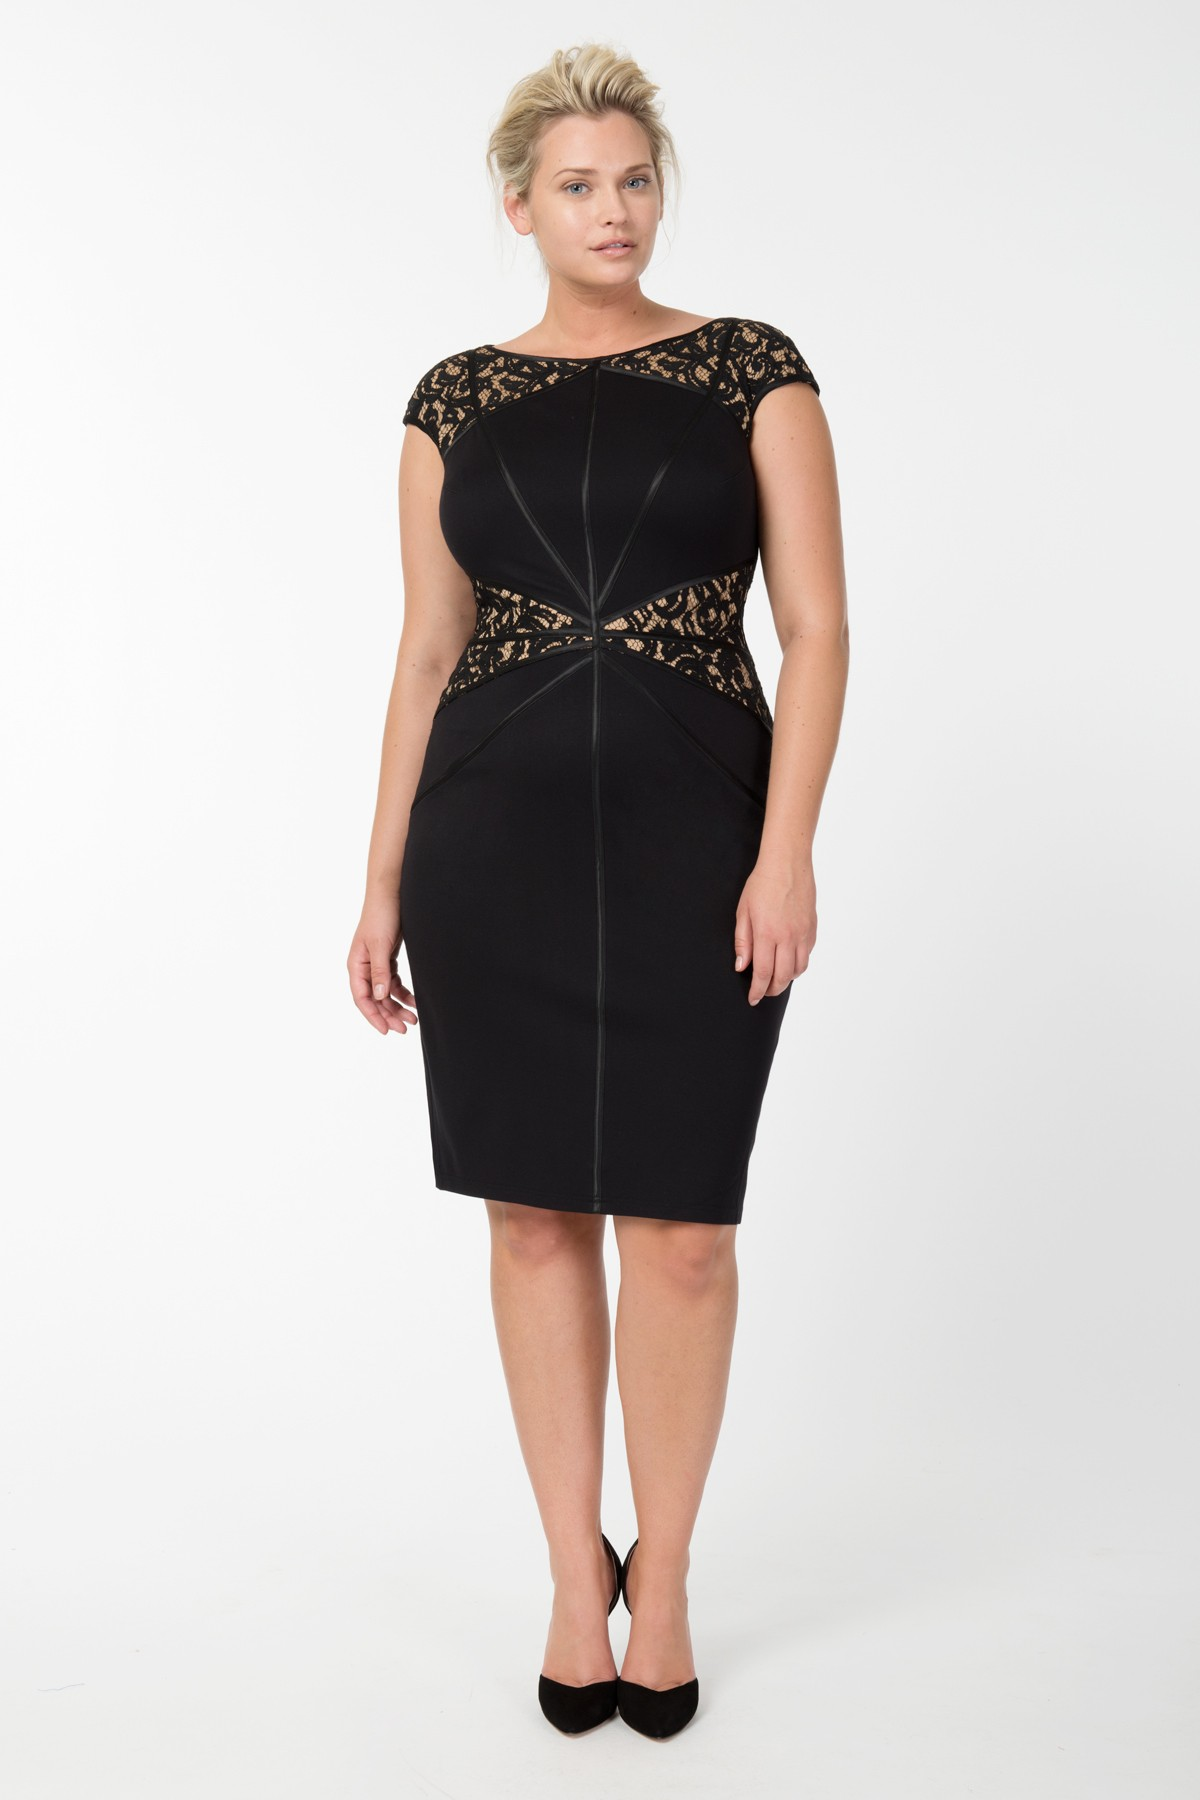 Lace and Jersey Sheath Dress in Black / Nude ($368.00, TadashiShoji.com)